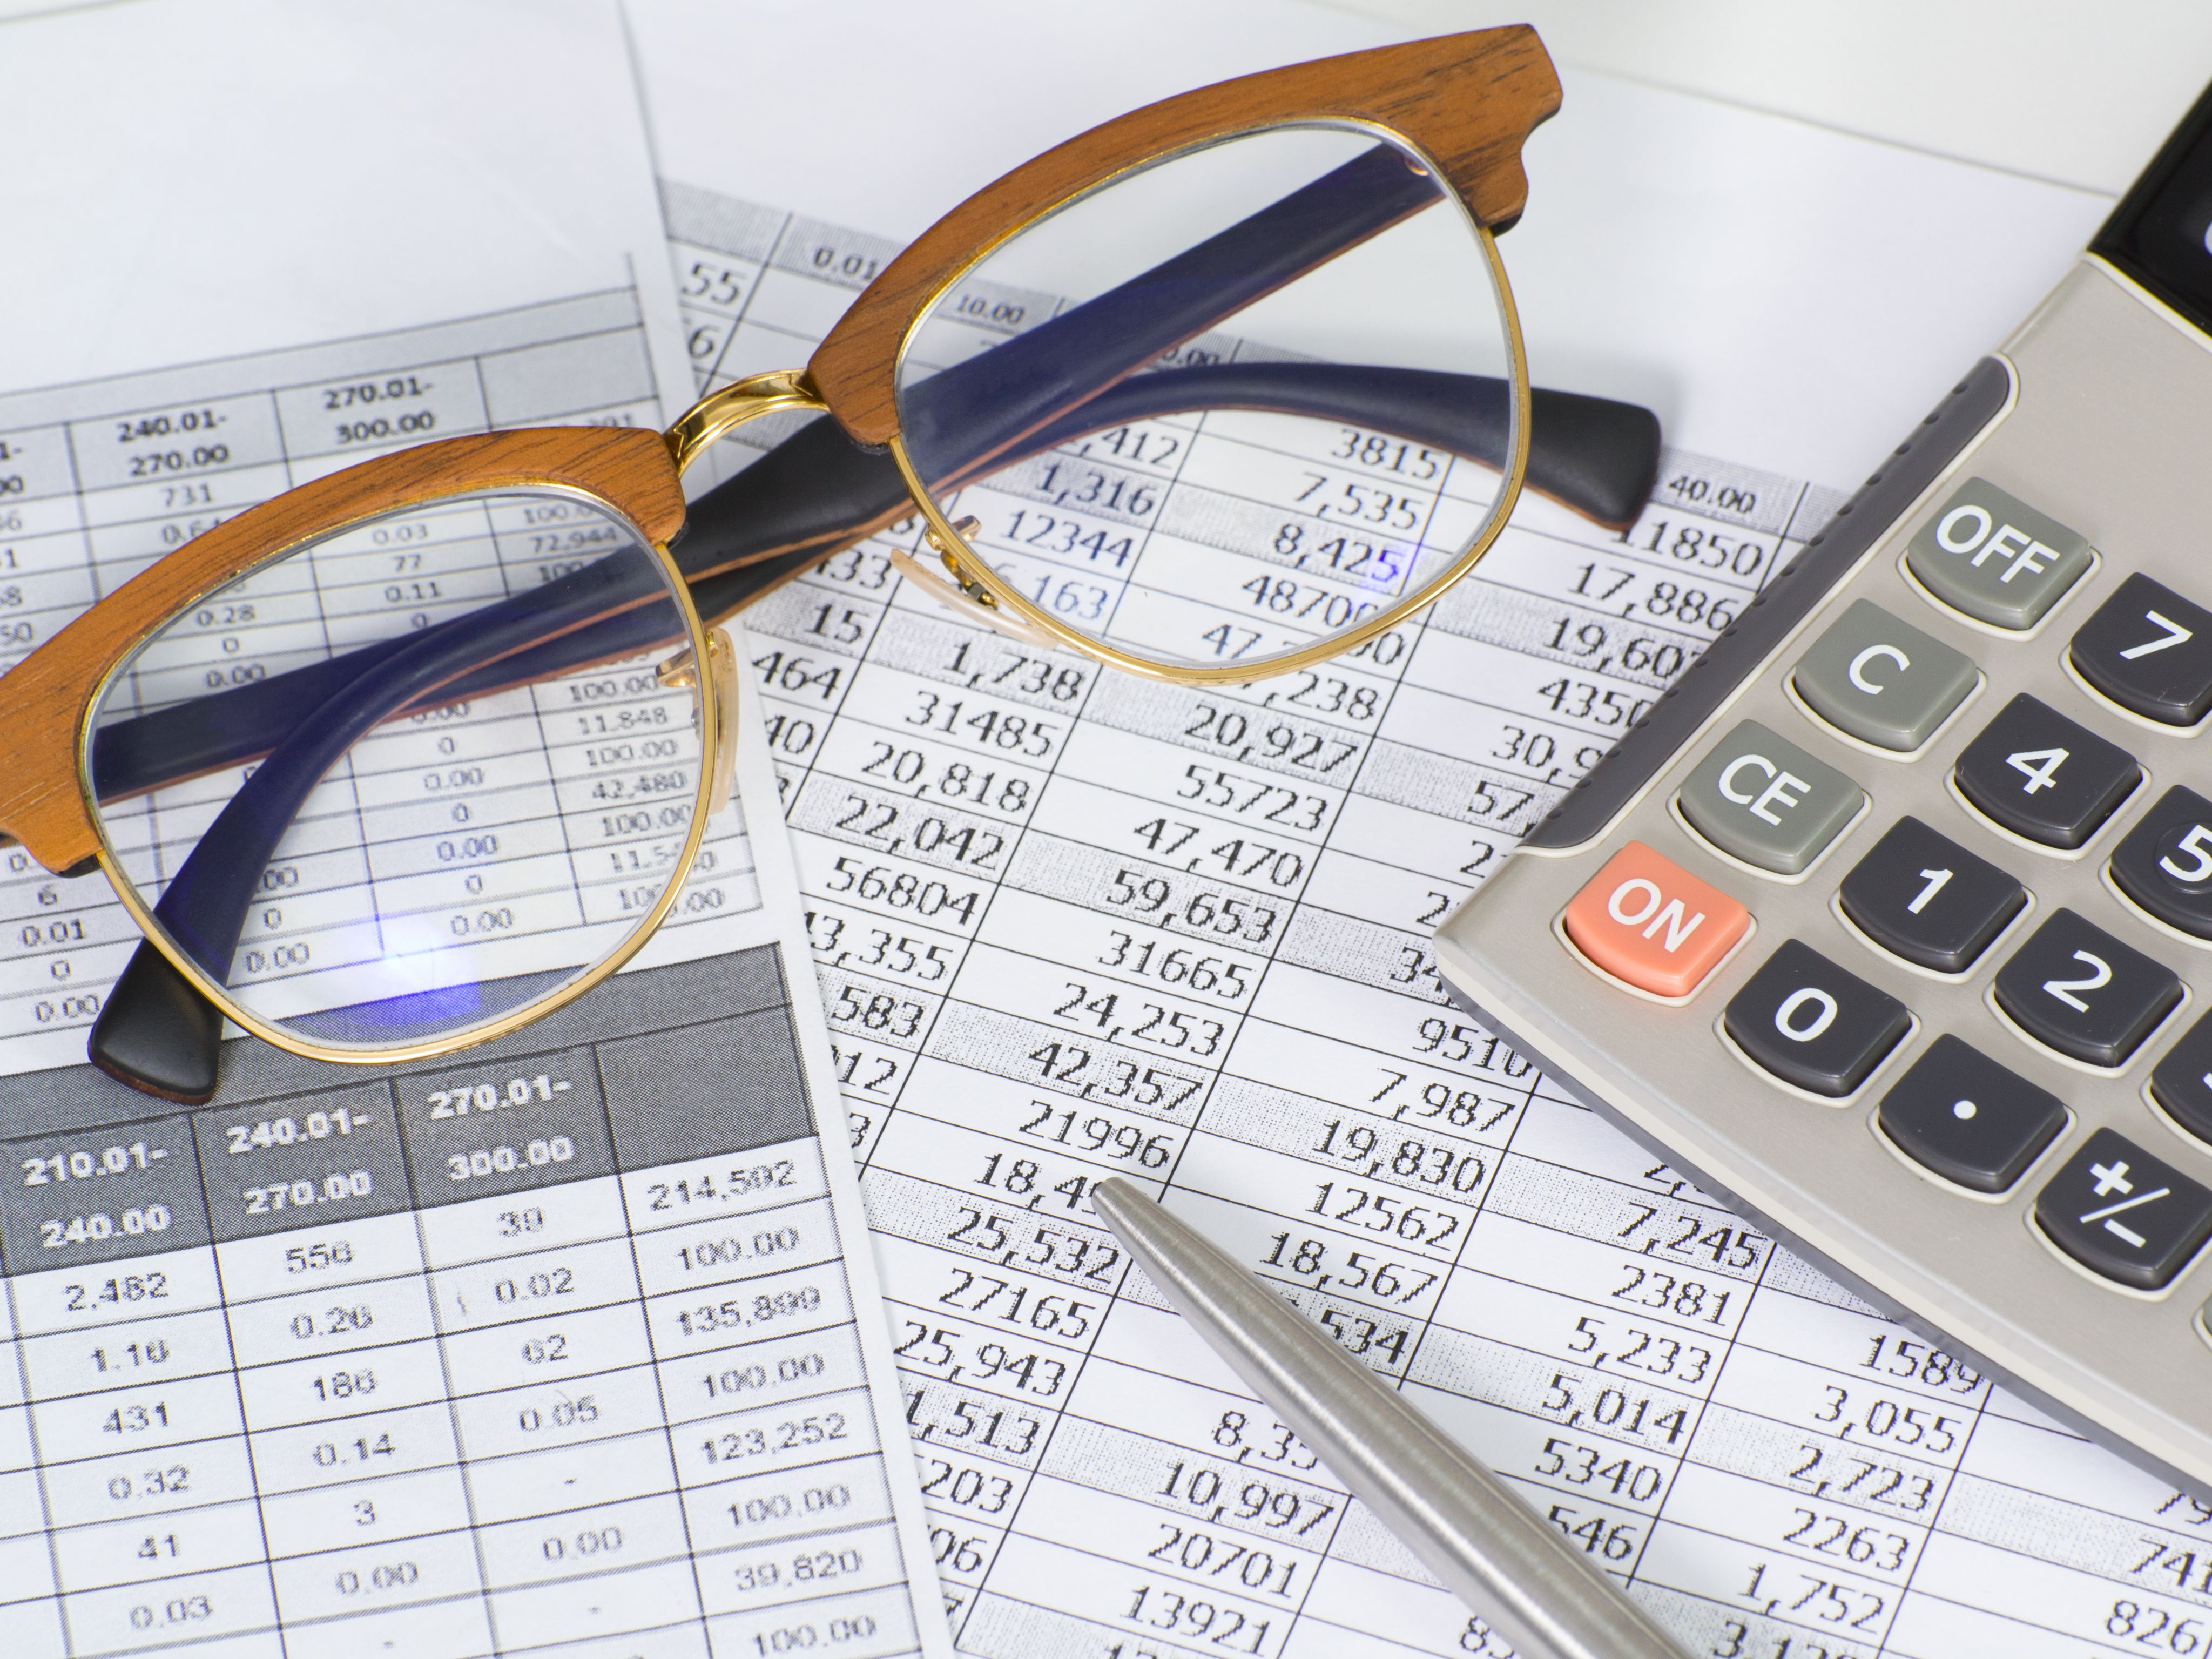 How to Calculate Gross Profit Margin